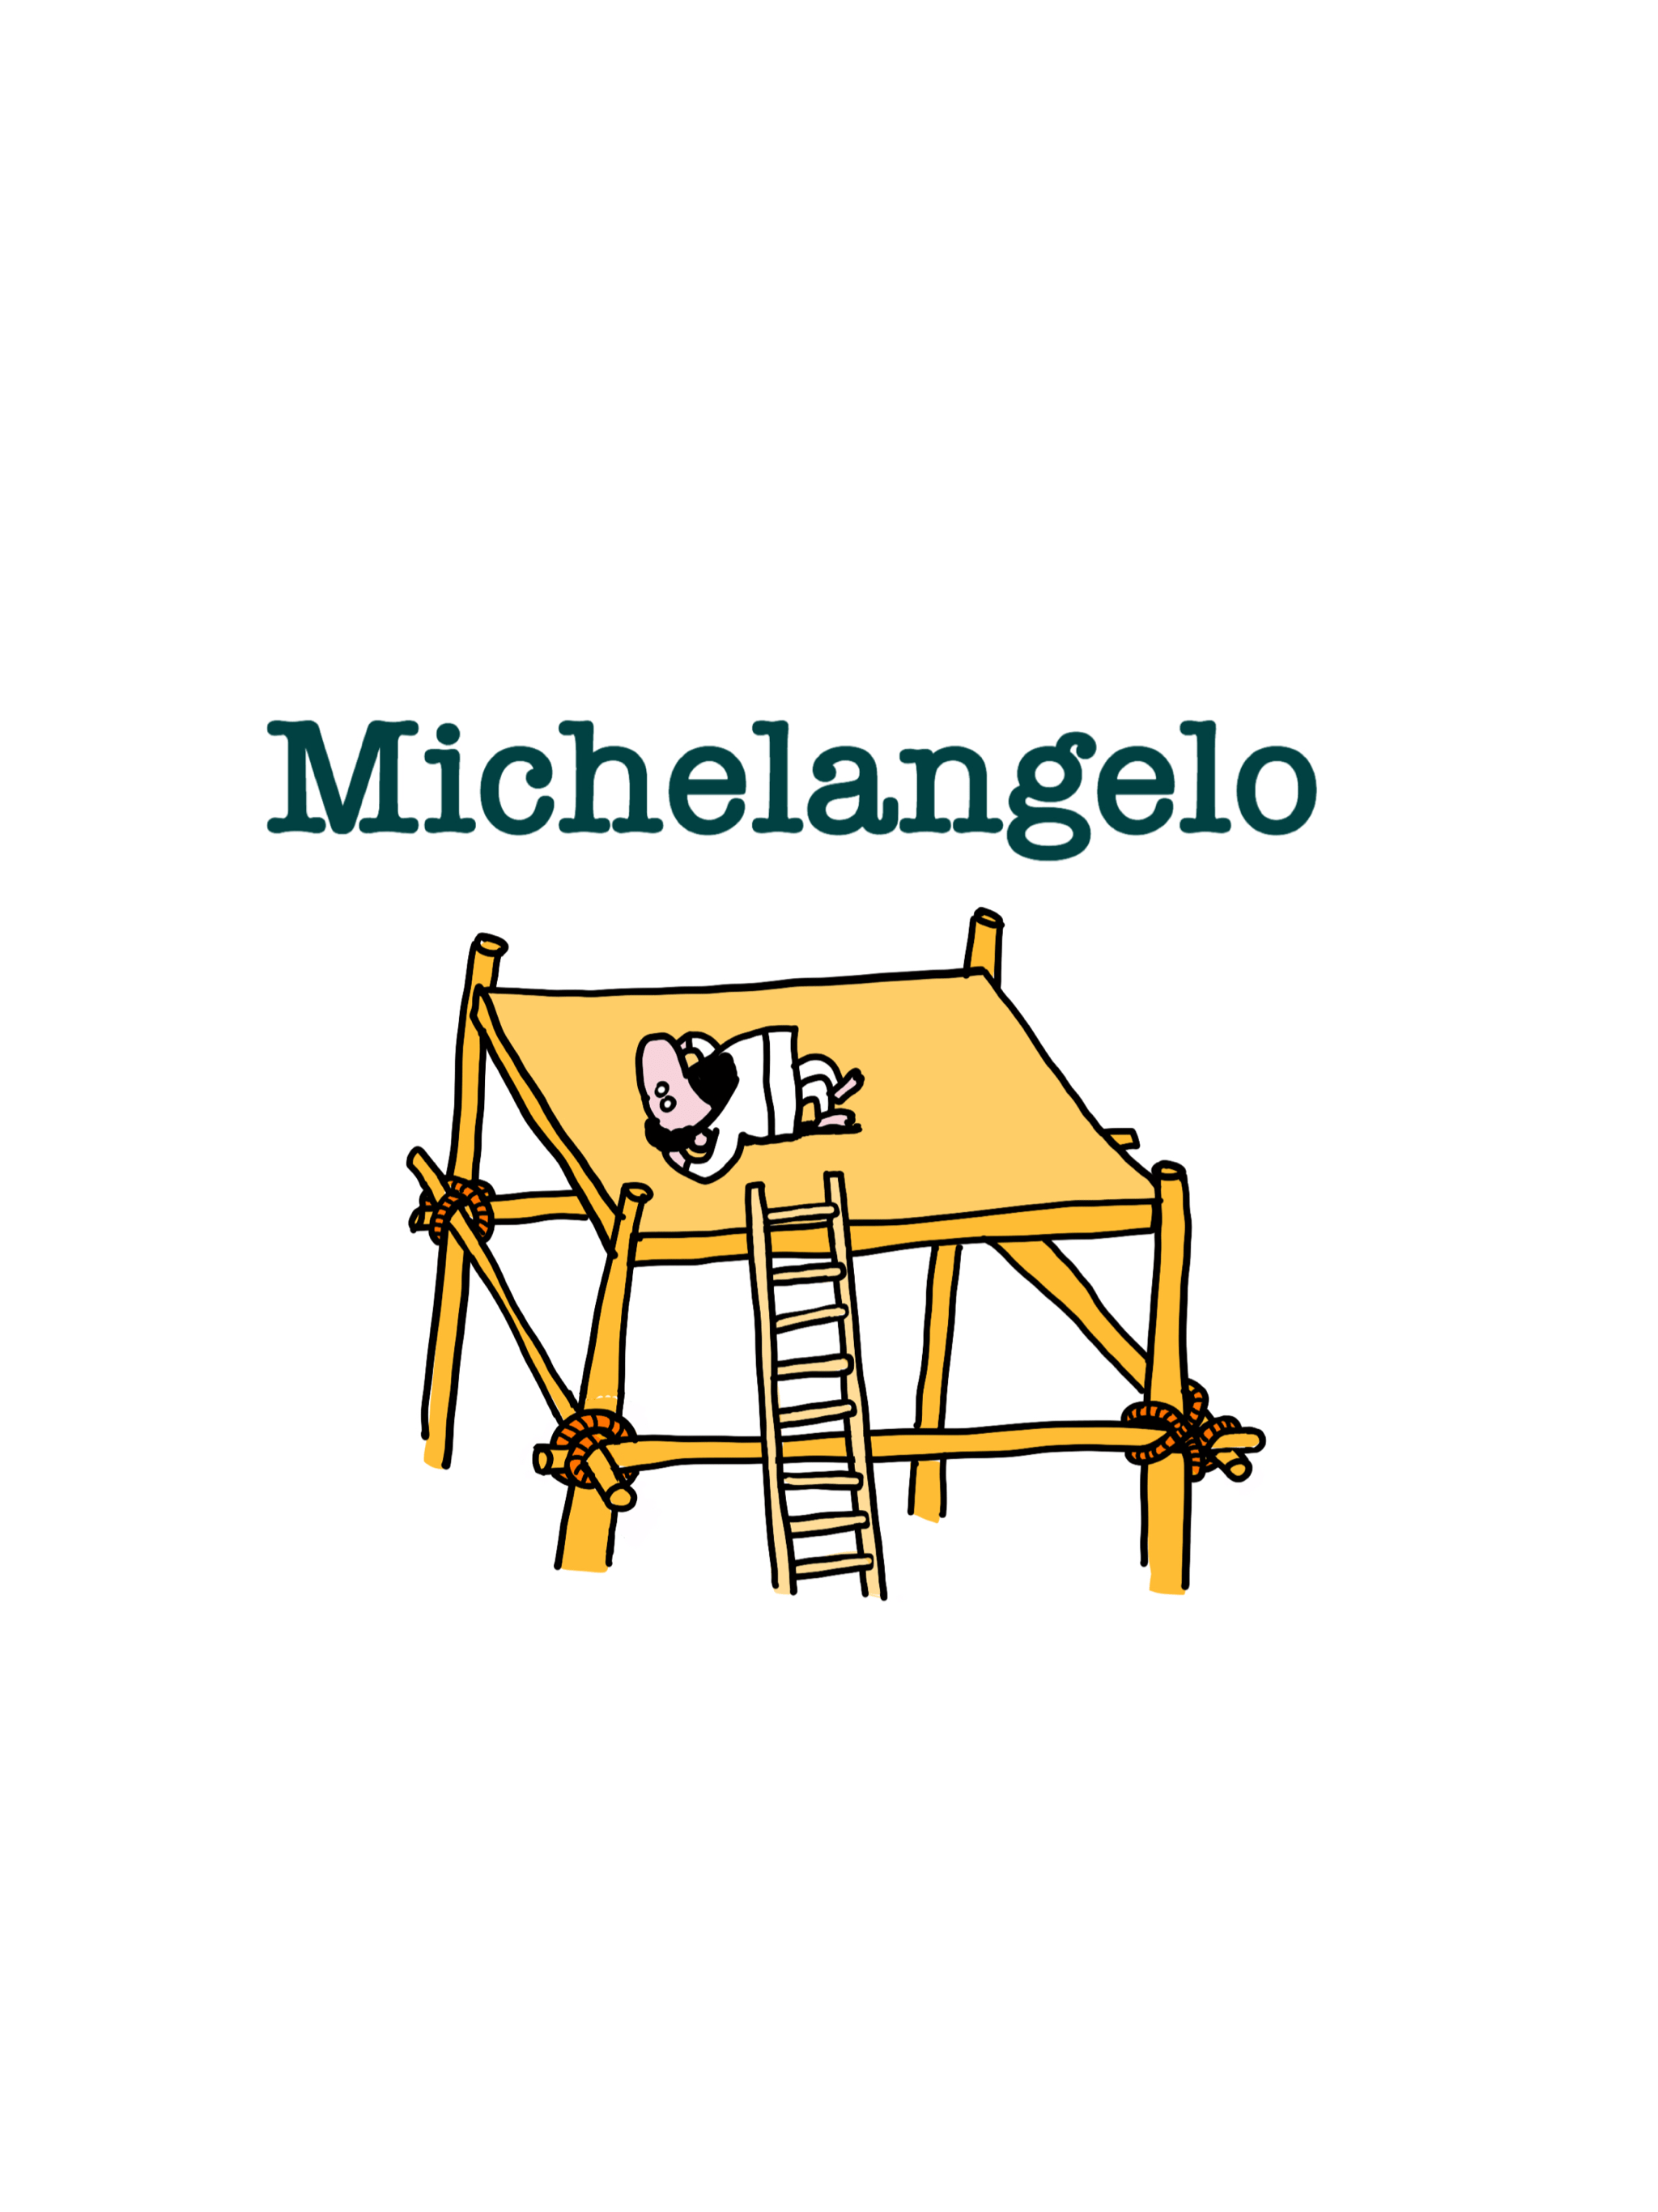 Michelangelo Buonarotti was assigned the job of painting the Sistine Chapel for Pope Julius II.